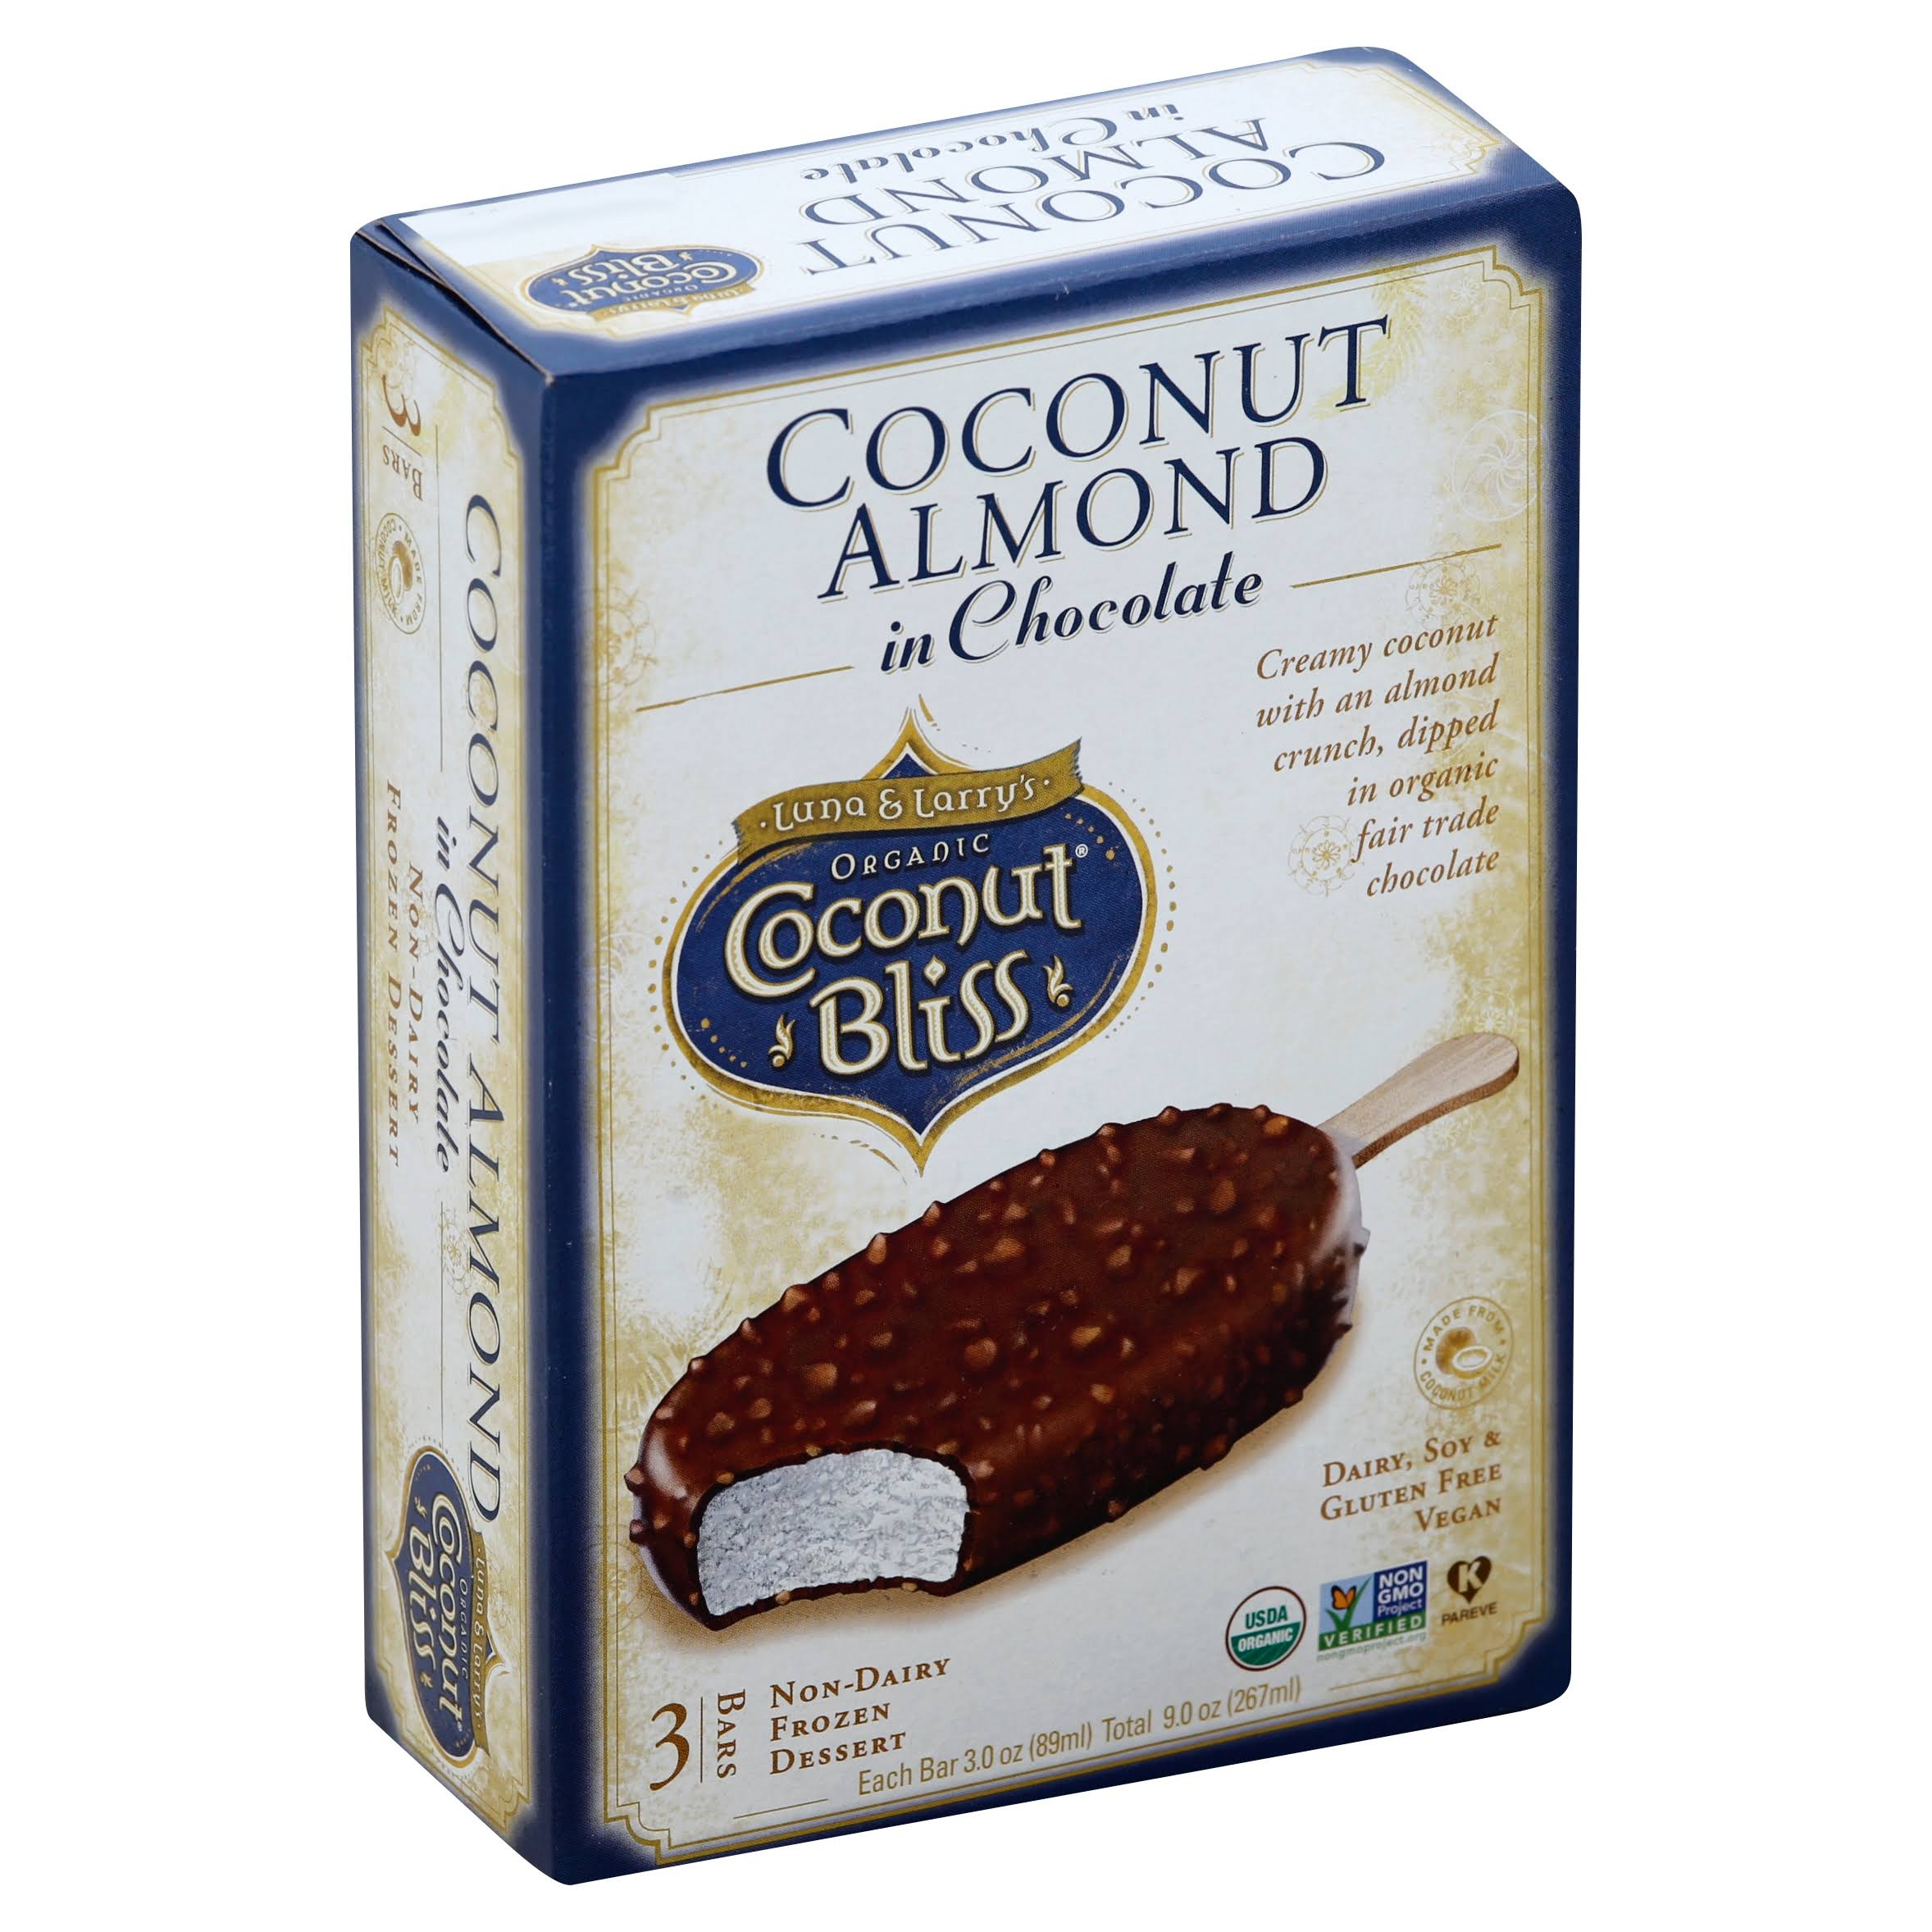 Luna & Larrys Organic Coconut Bliss Frozen Dessert Bars, Non-Dairy, Coconut Almond in Chocolate - 3 pack, 3 oz bars